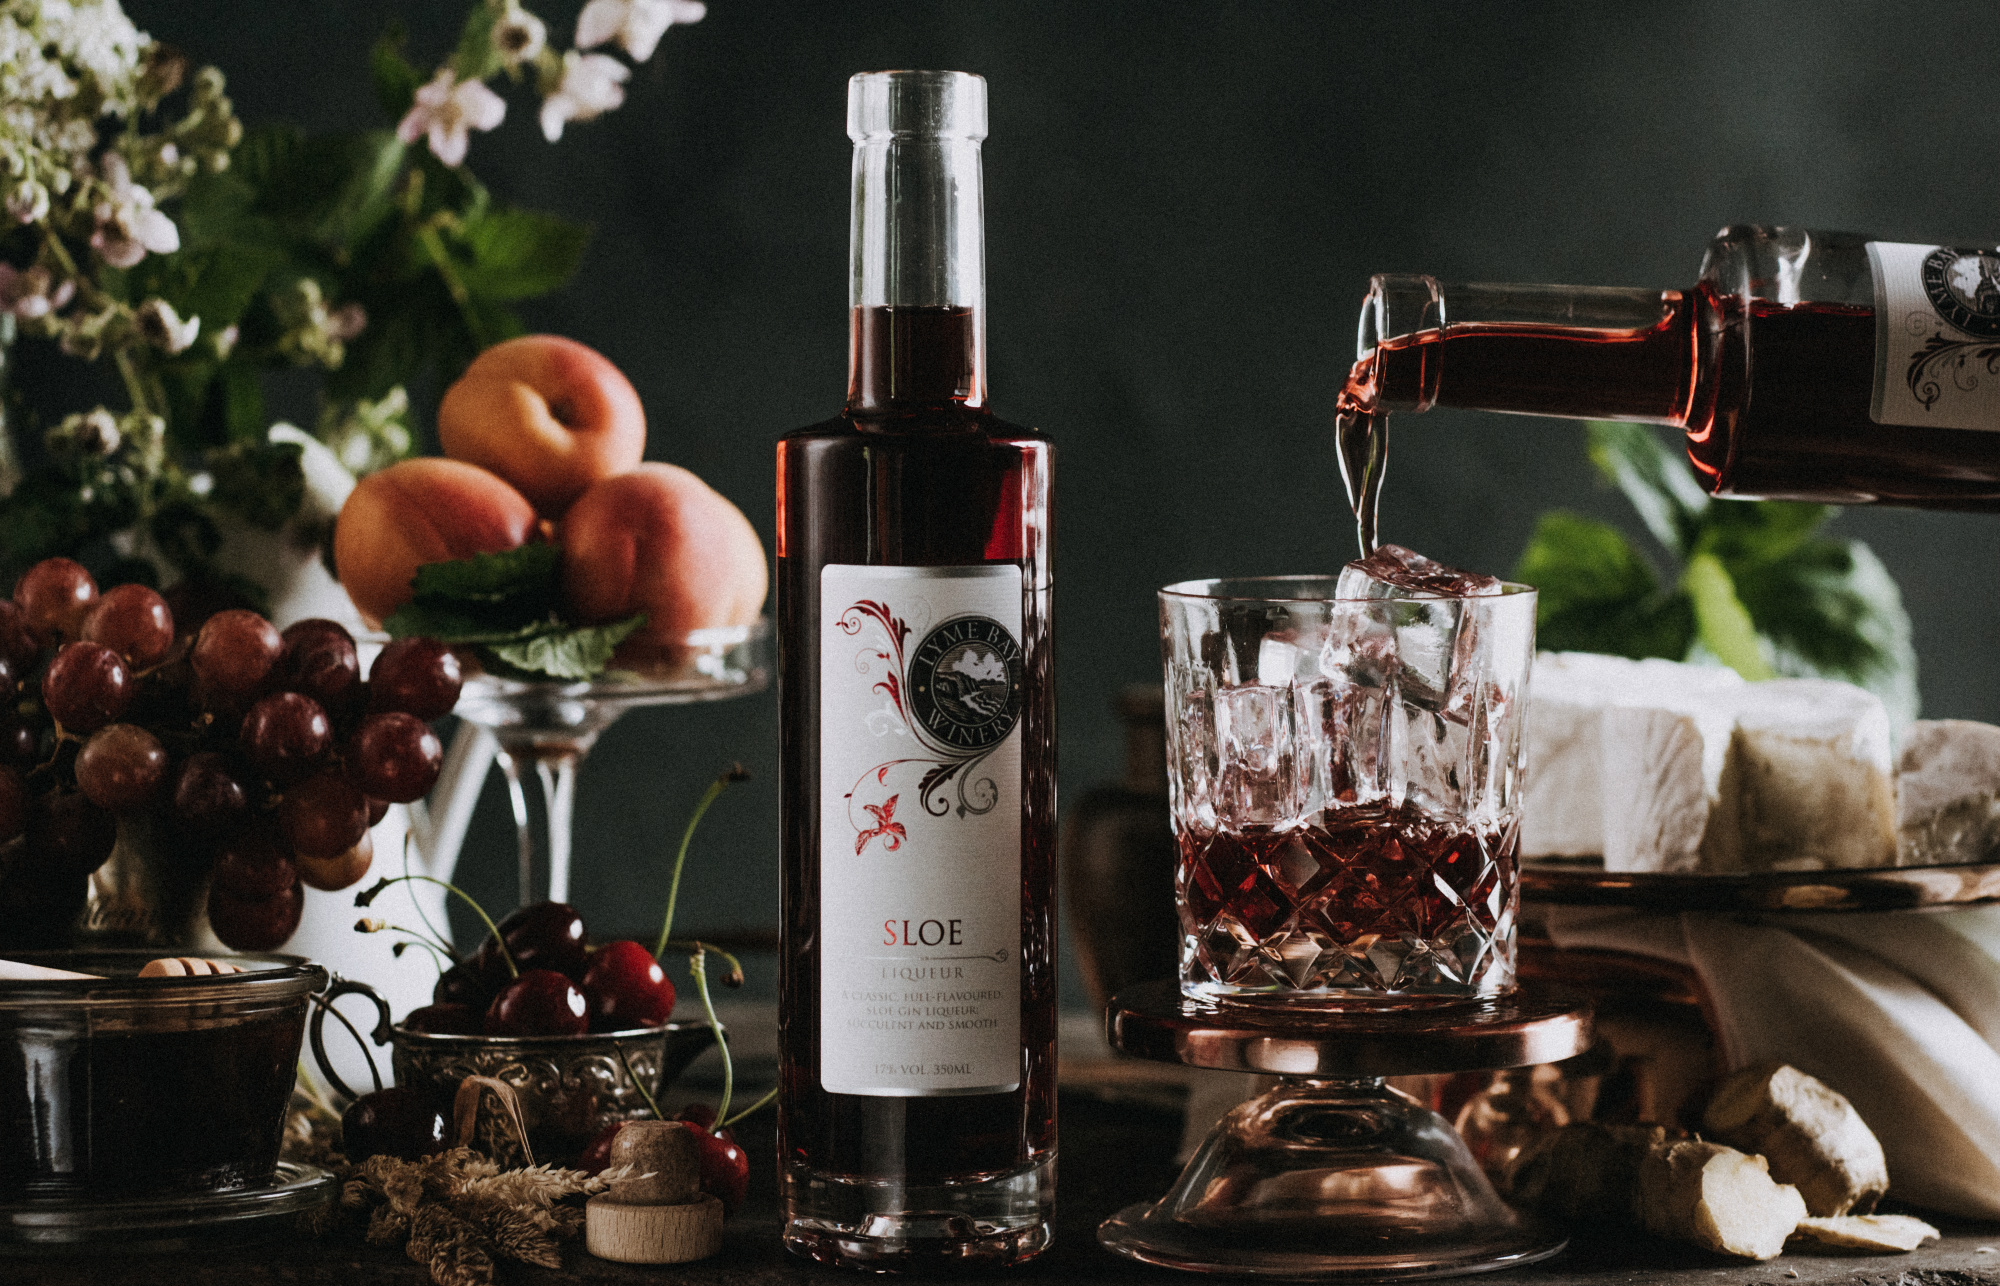 Lyme Bay winery sloe gin bottle with a glass of the gin being poured